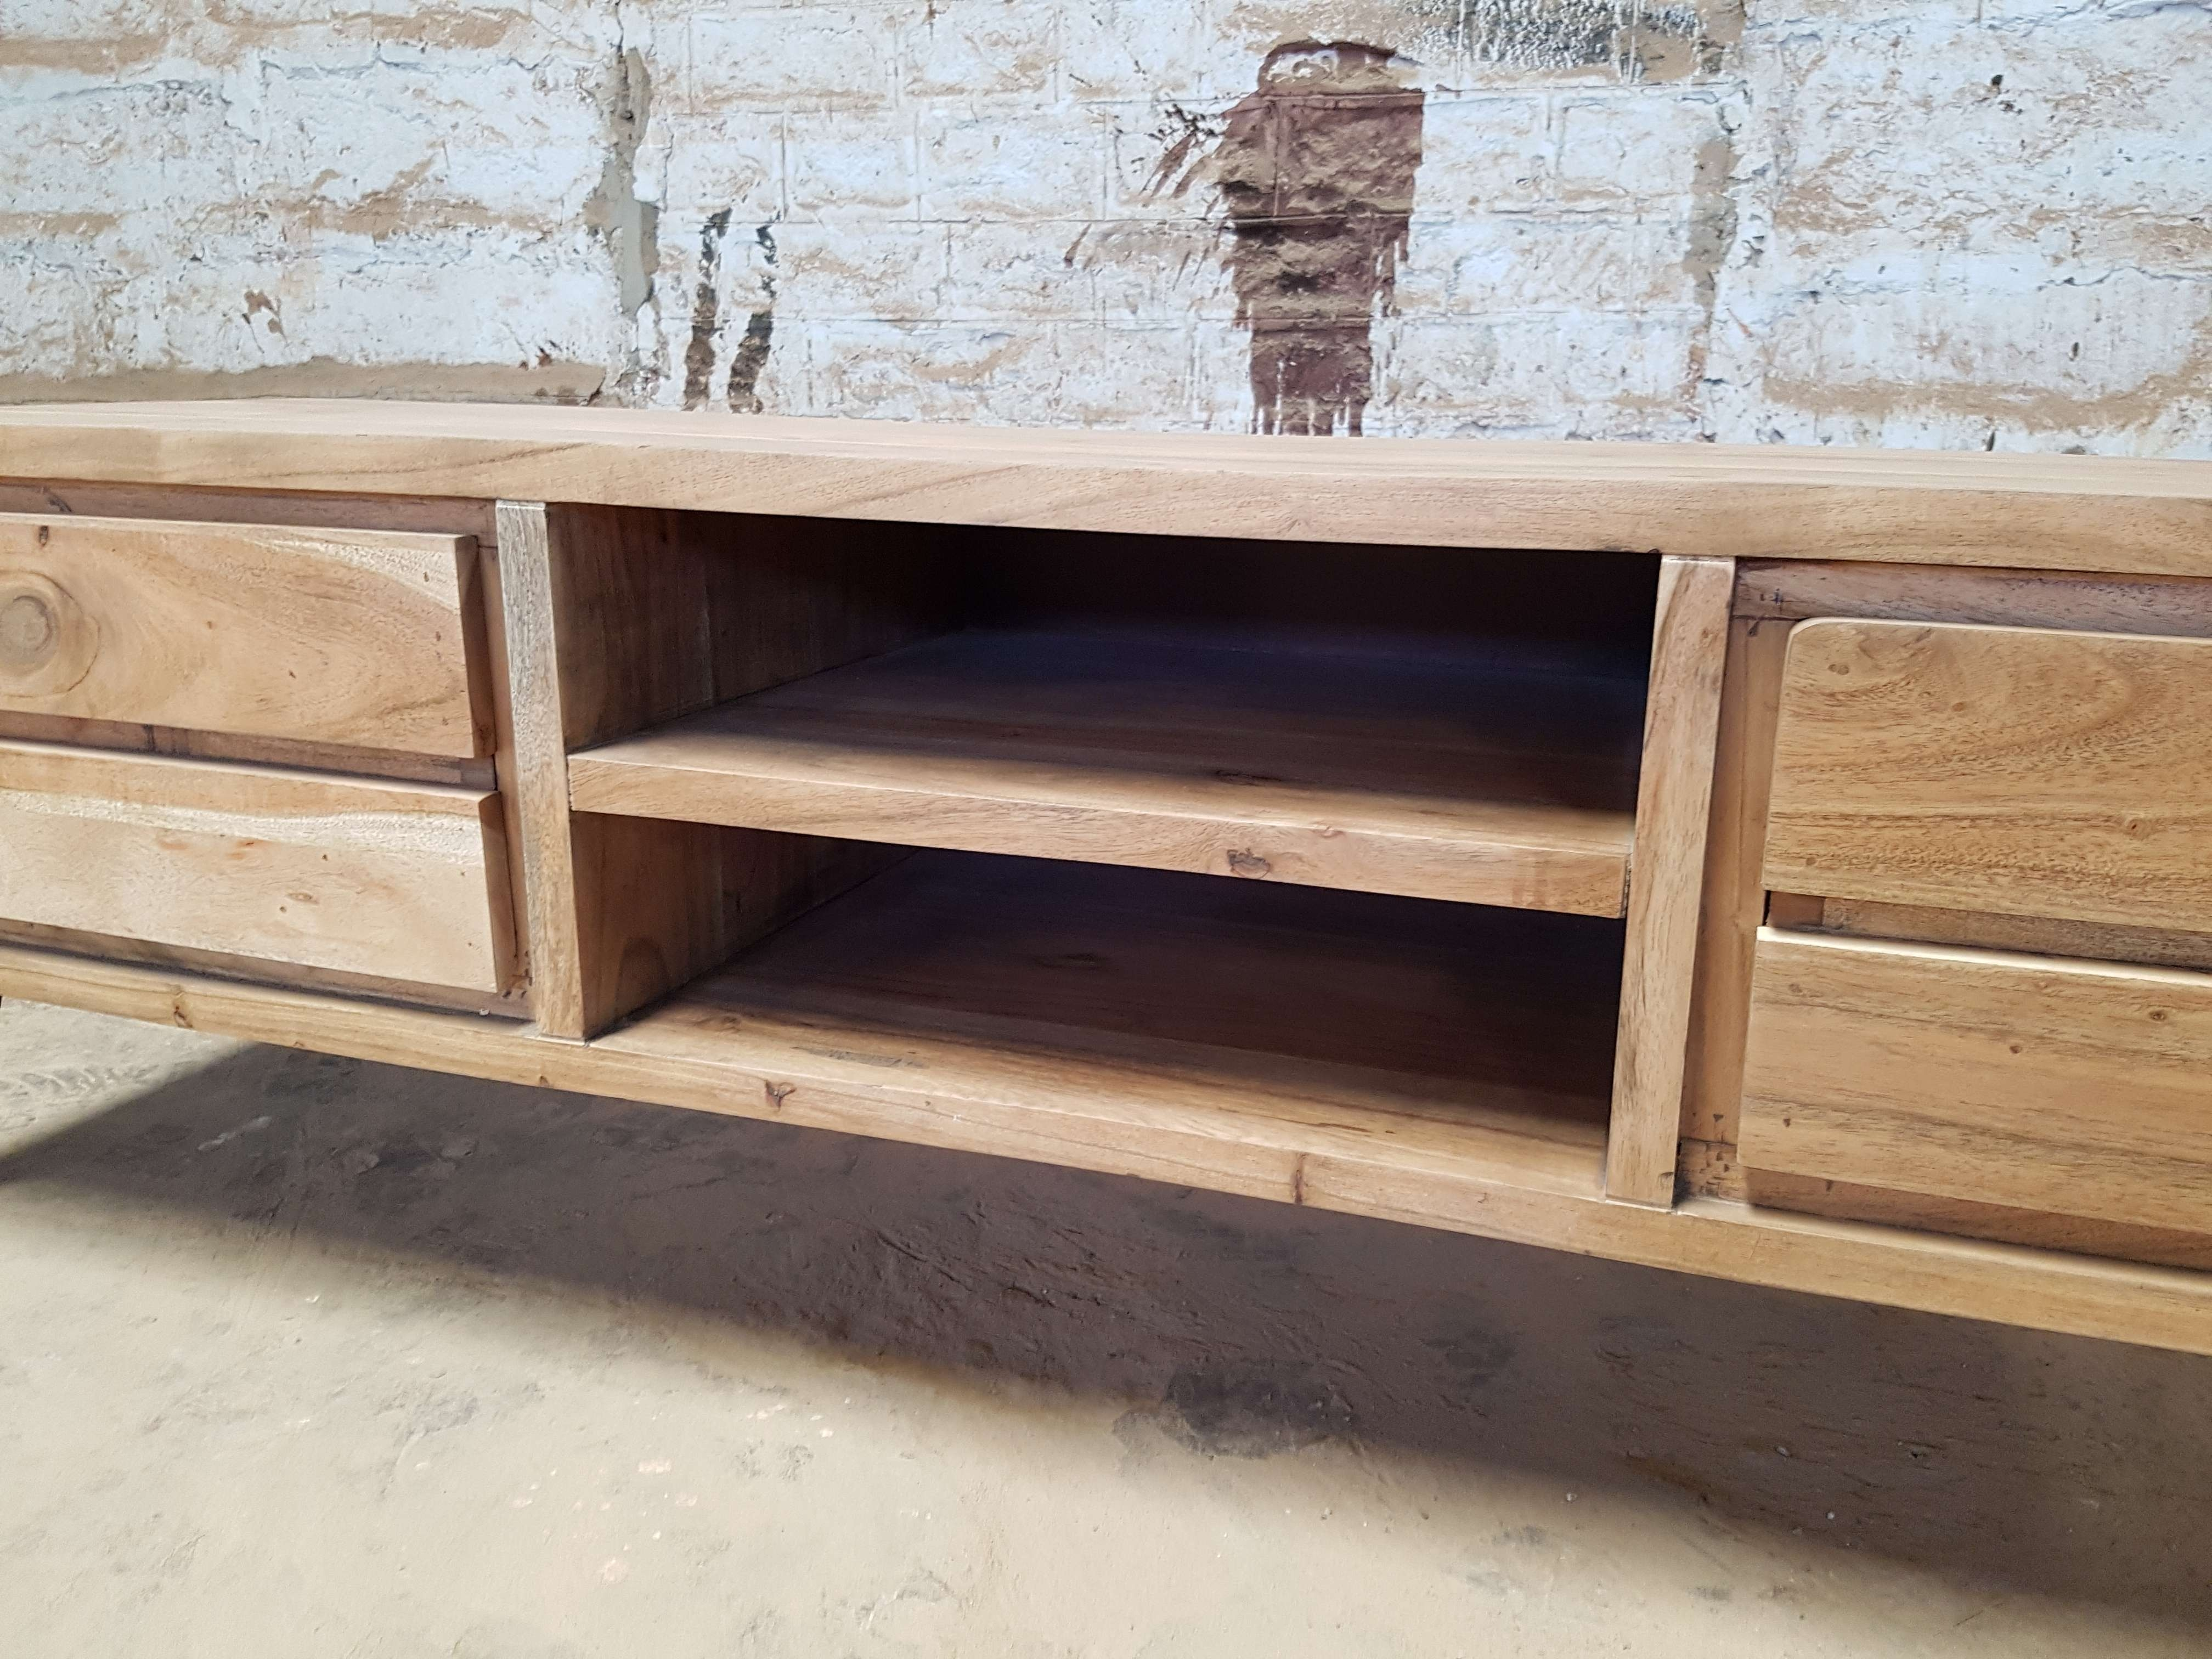 Industrial Furniture – Scandinavian Wooden Tv Cabinet Scandus With Within Scandinavian Tv Stands (View 6 of 15)